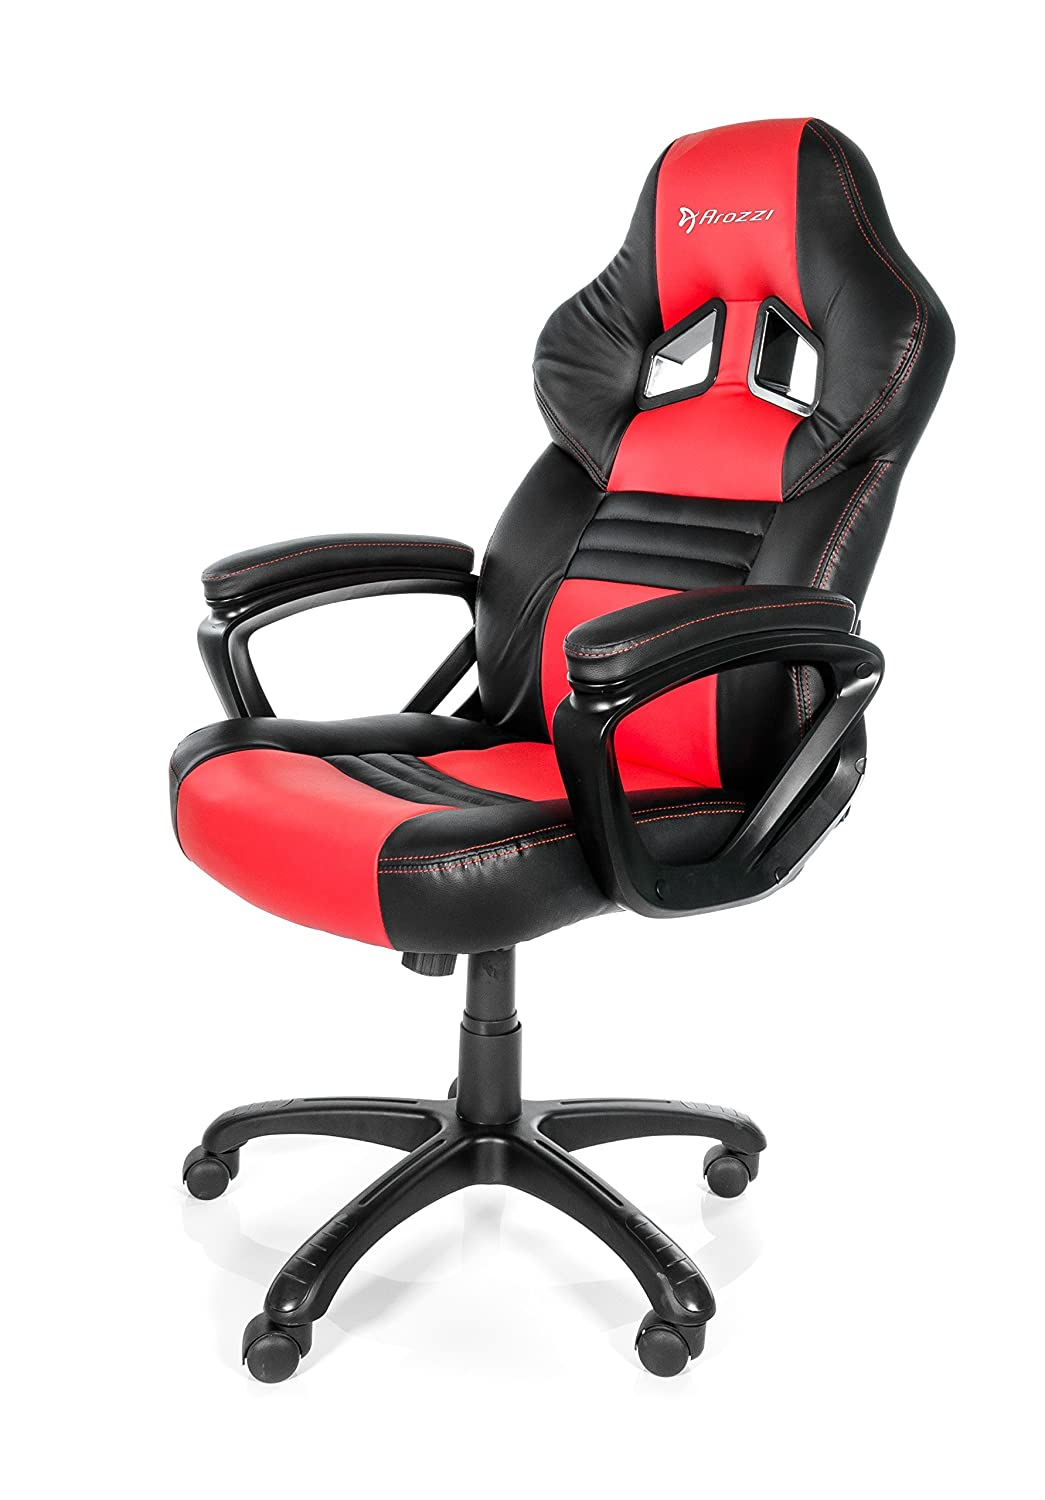 Arozzi Monza Series Gaming Racing Style Swivel Chair, Red/Black MONZA-RD